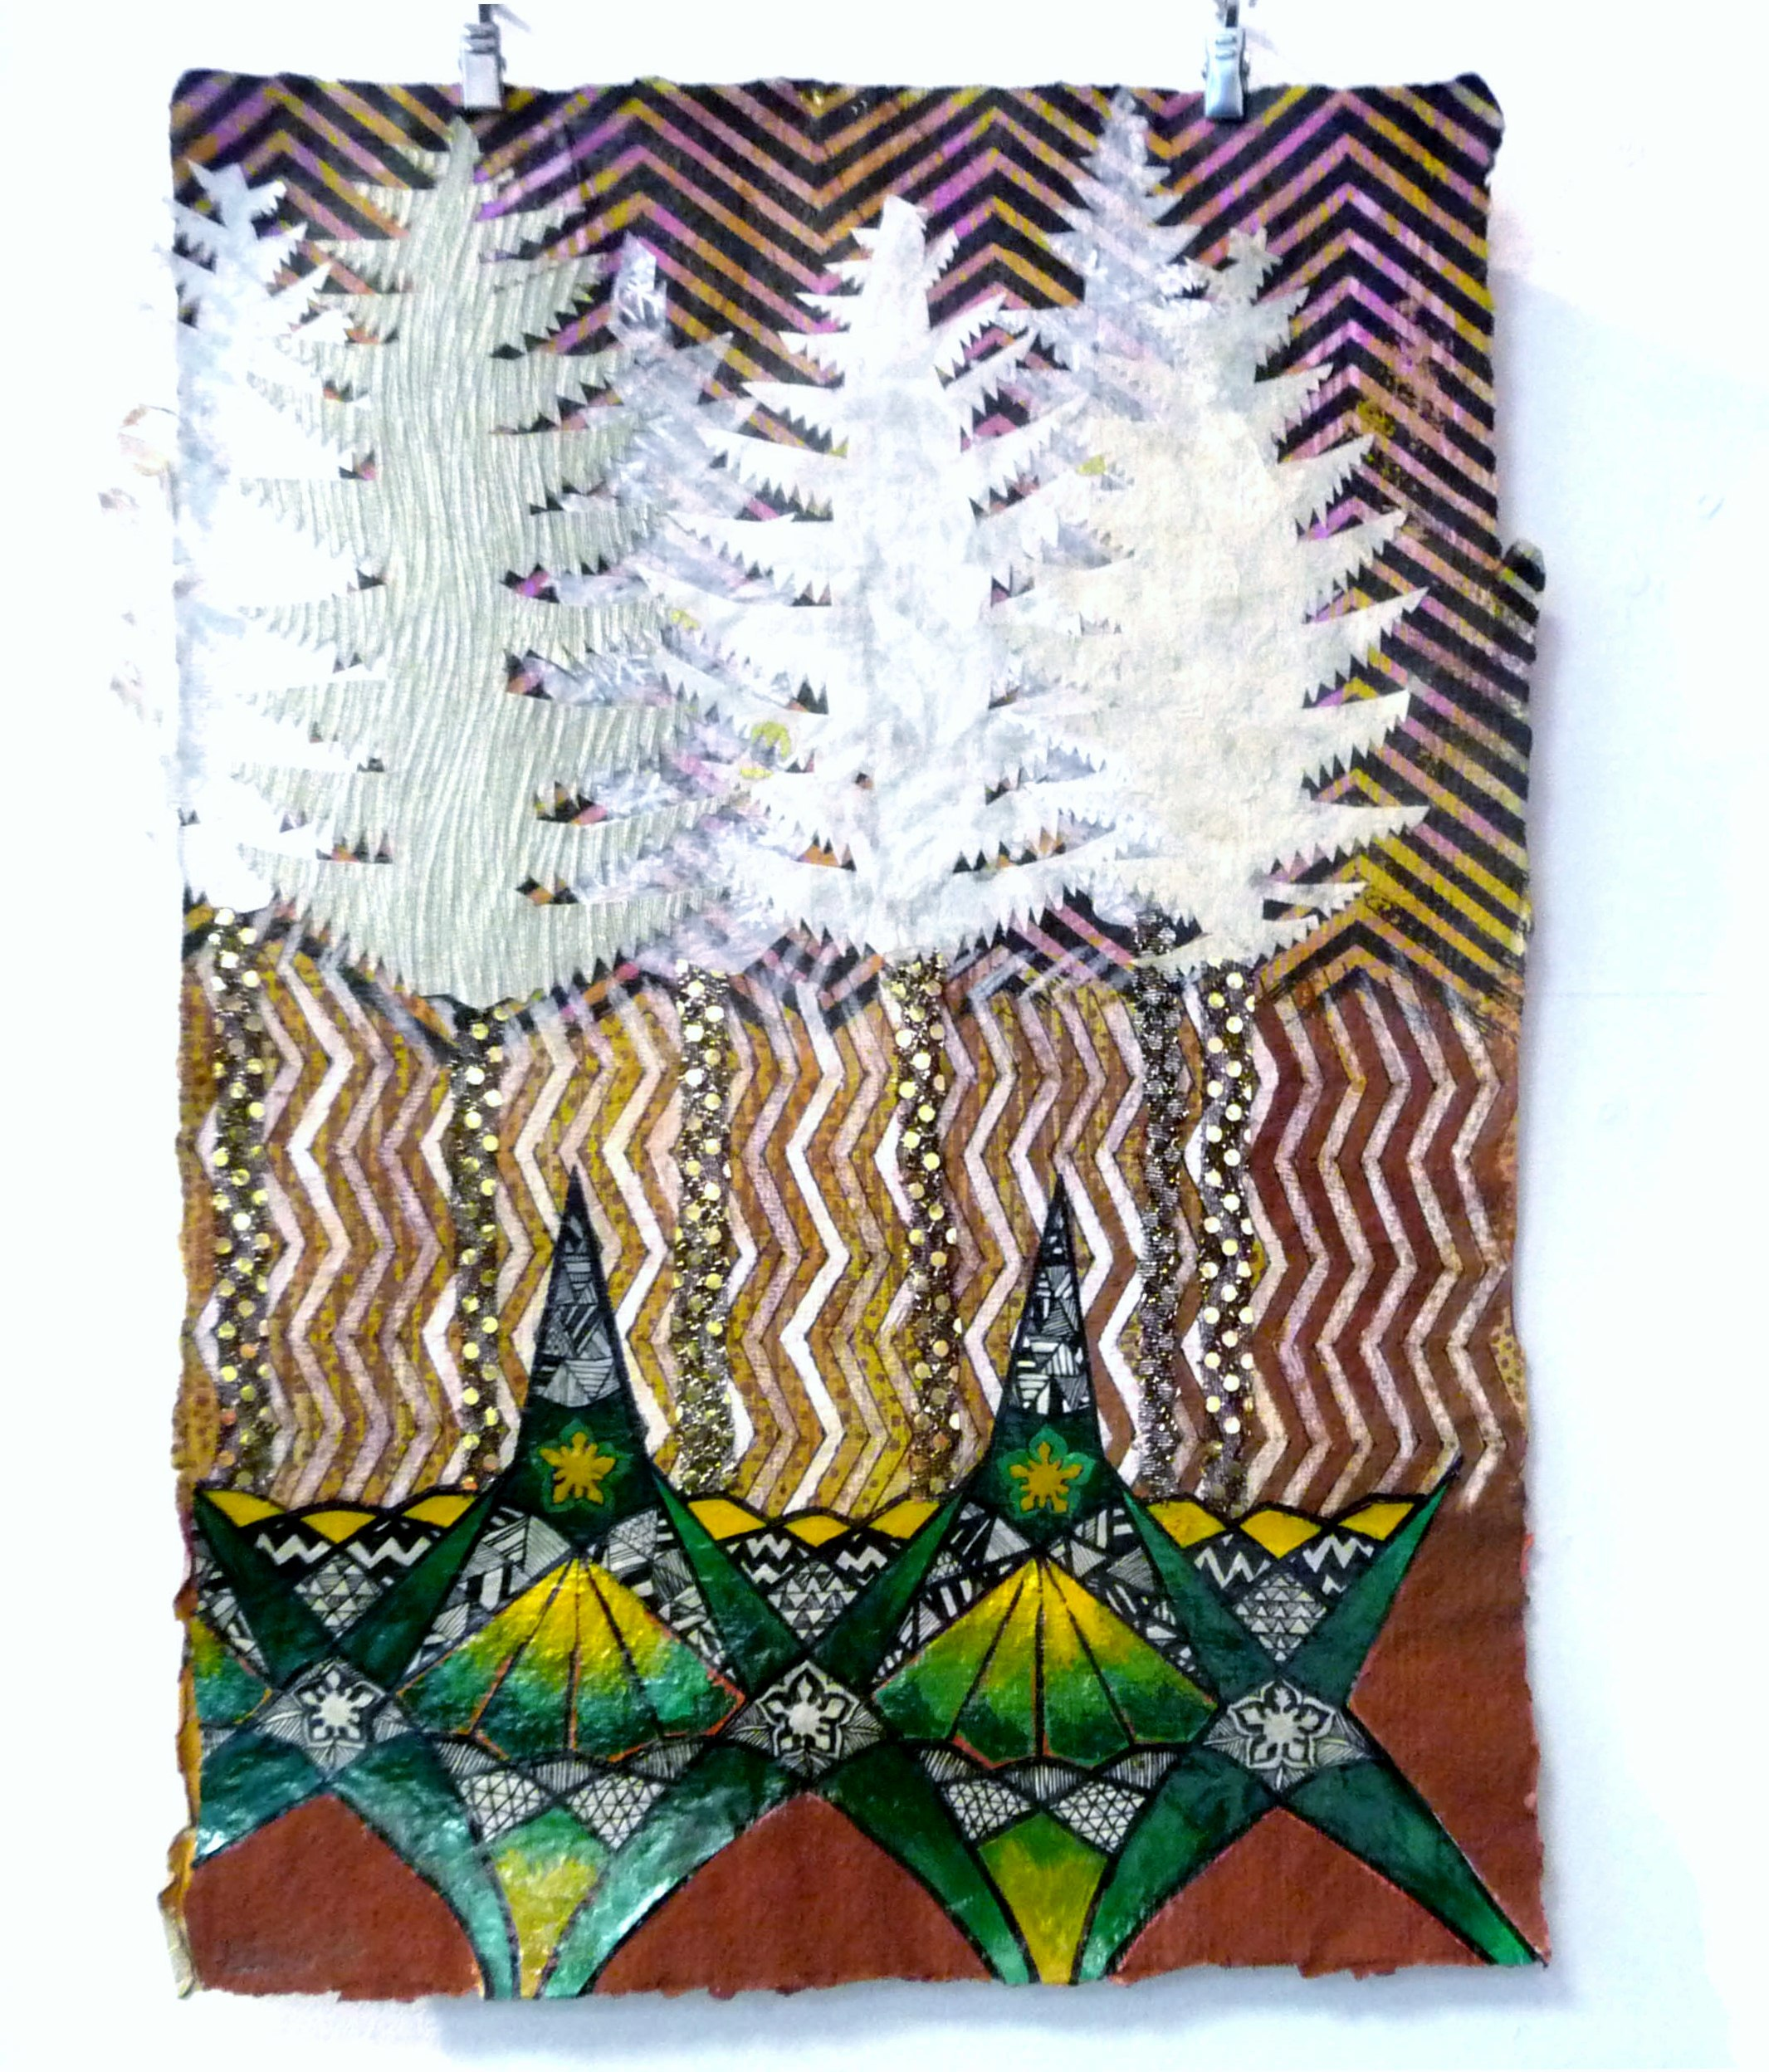 BENEATH THE FOREST 2014 by Eimear Kavanagh, ink, gouache, paper collage, fabric, secrets